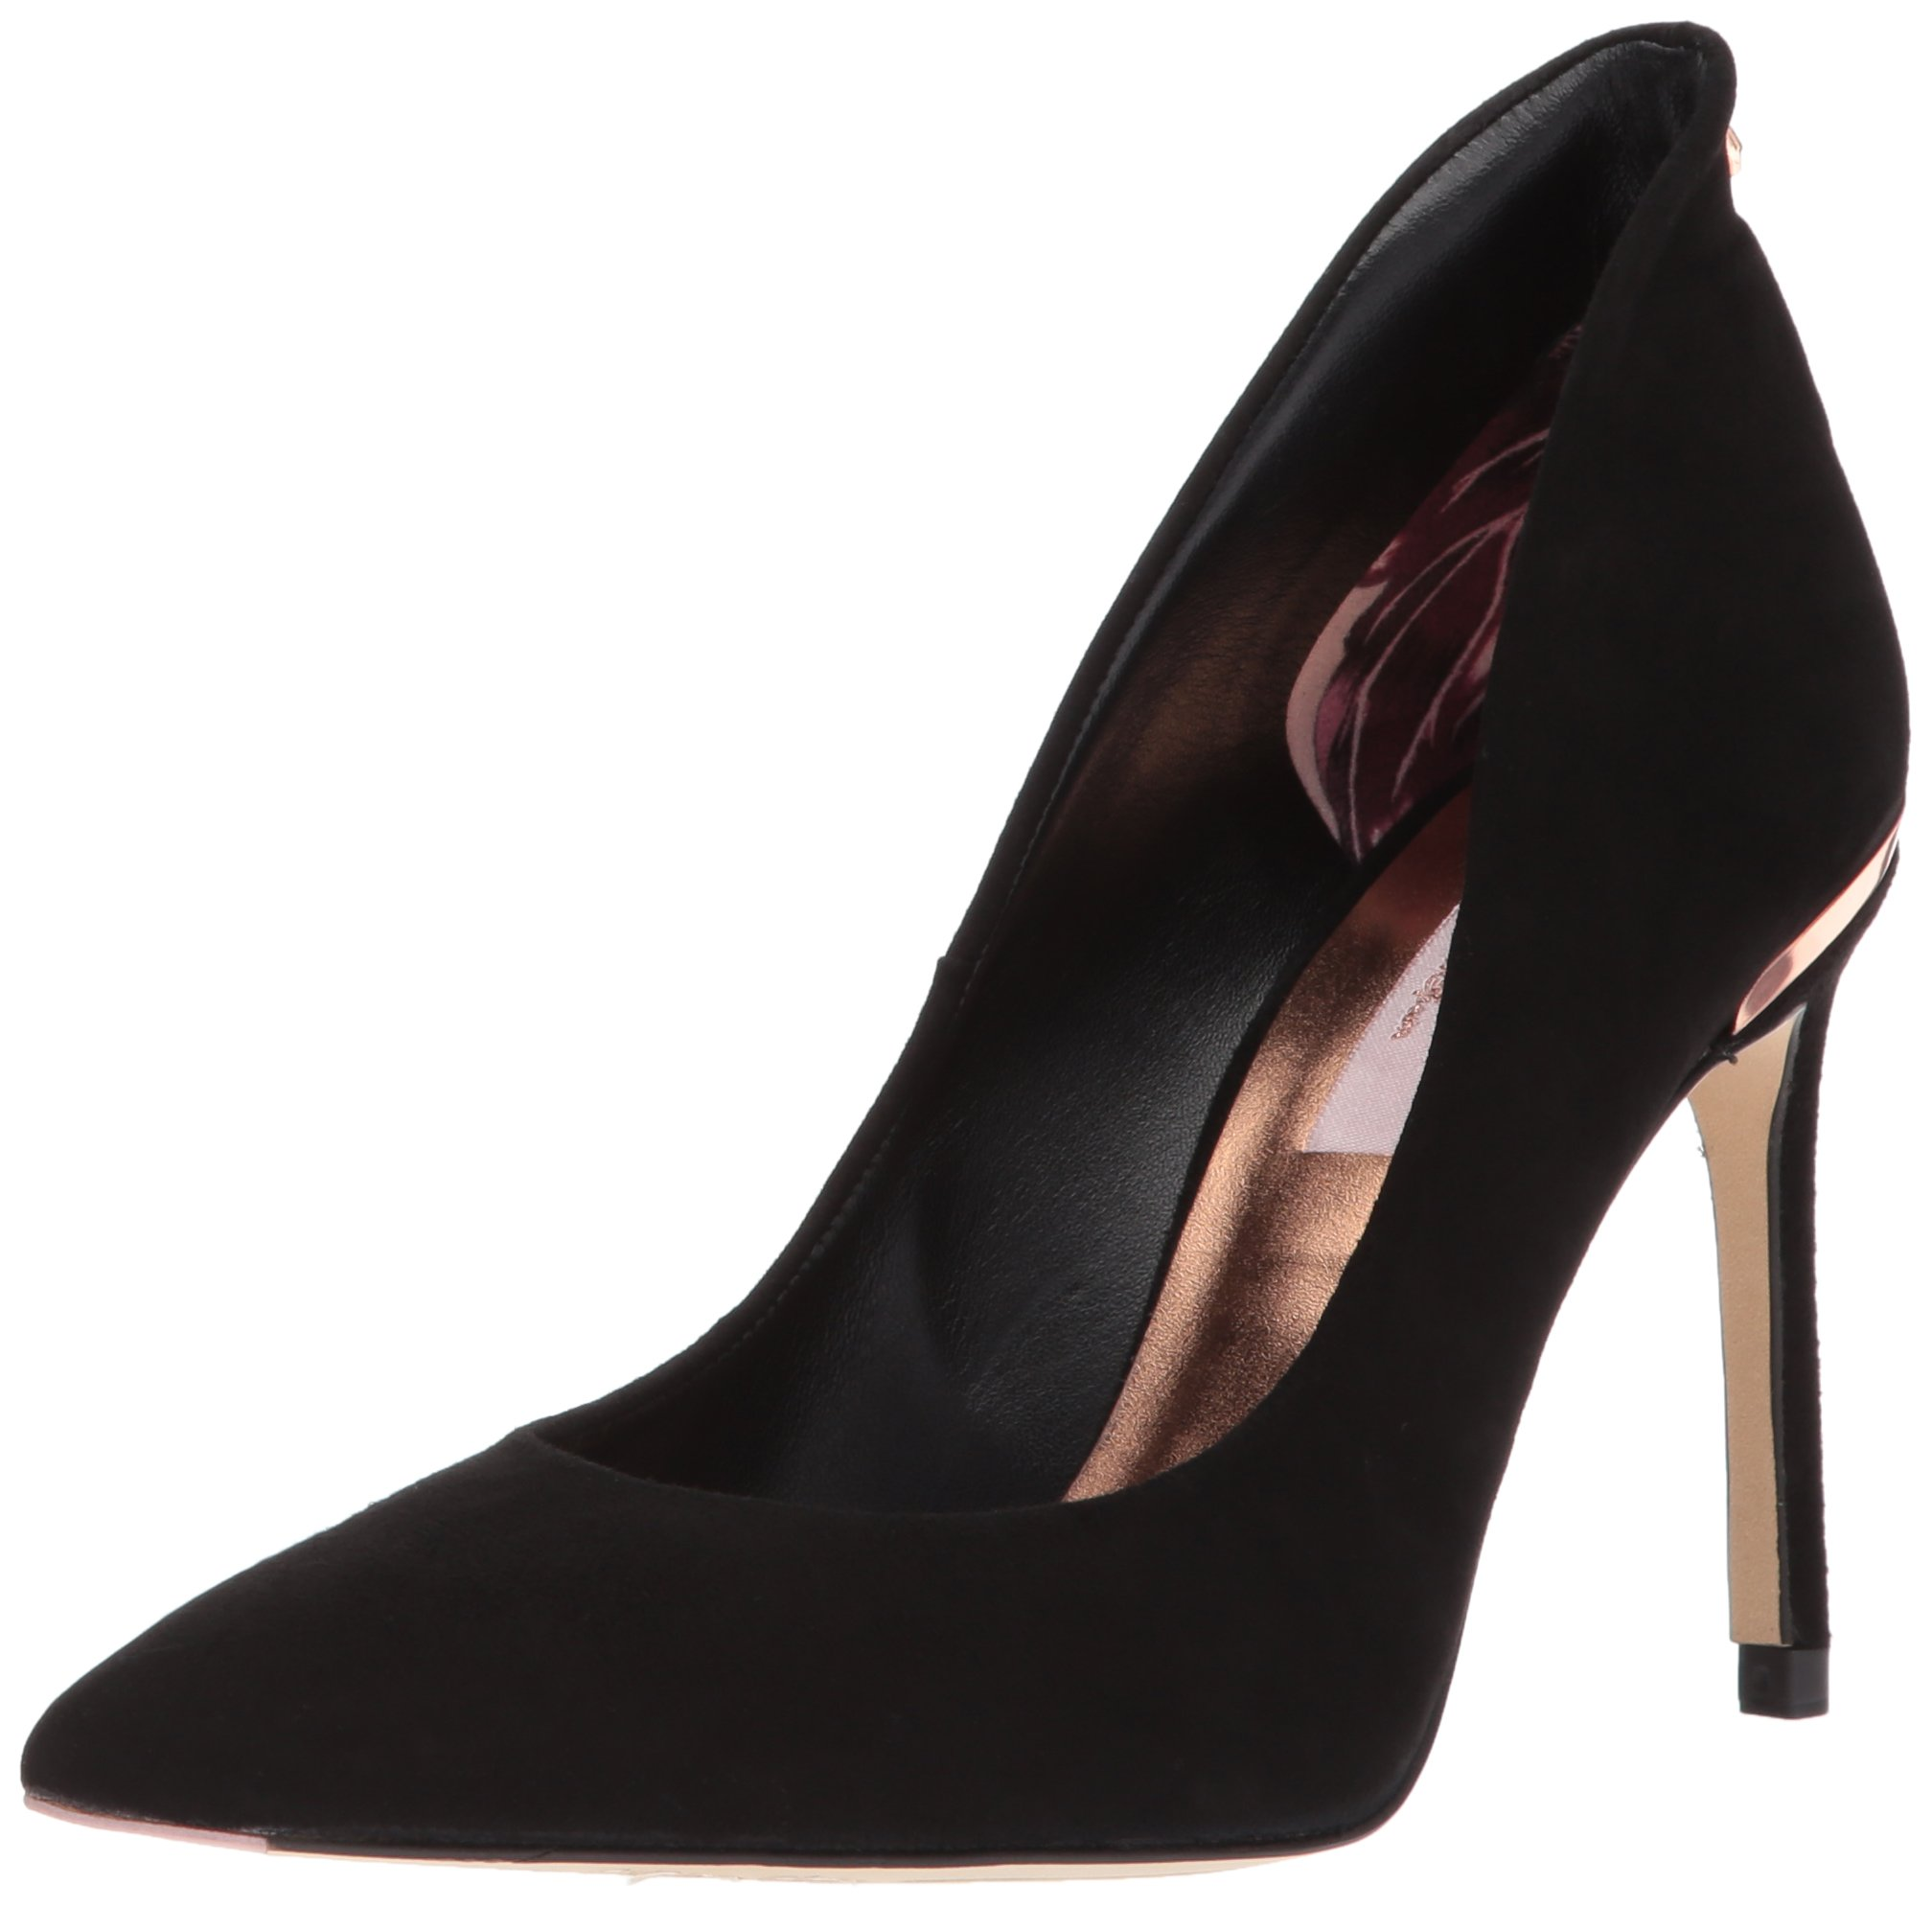 Ted Baker Women's Savio Pump, Black, 8 M US by Ted Baker (Image #1)